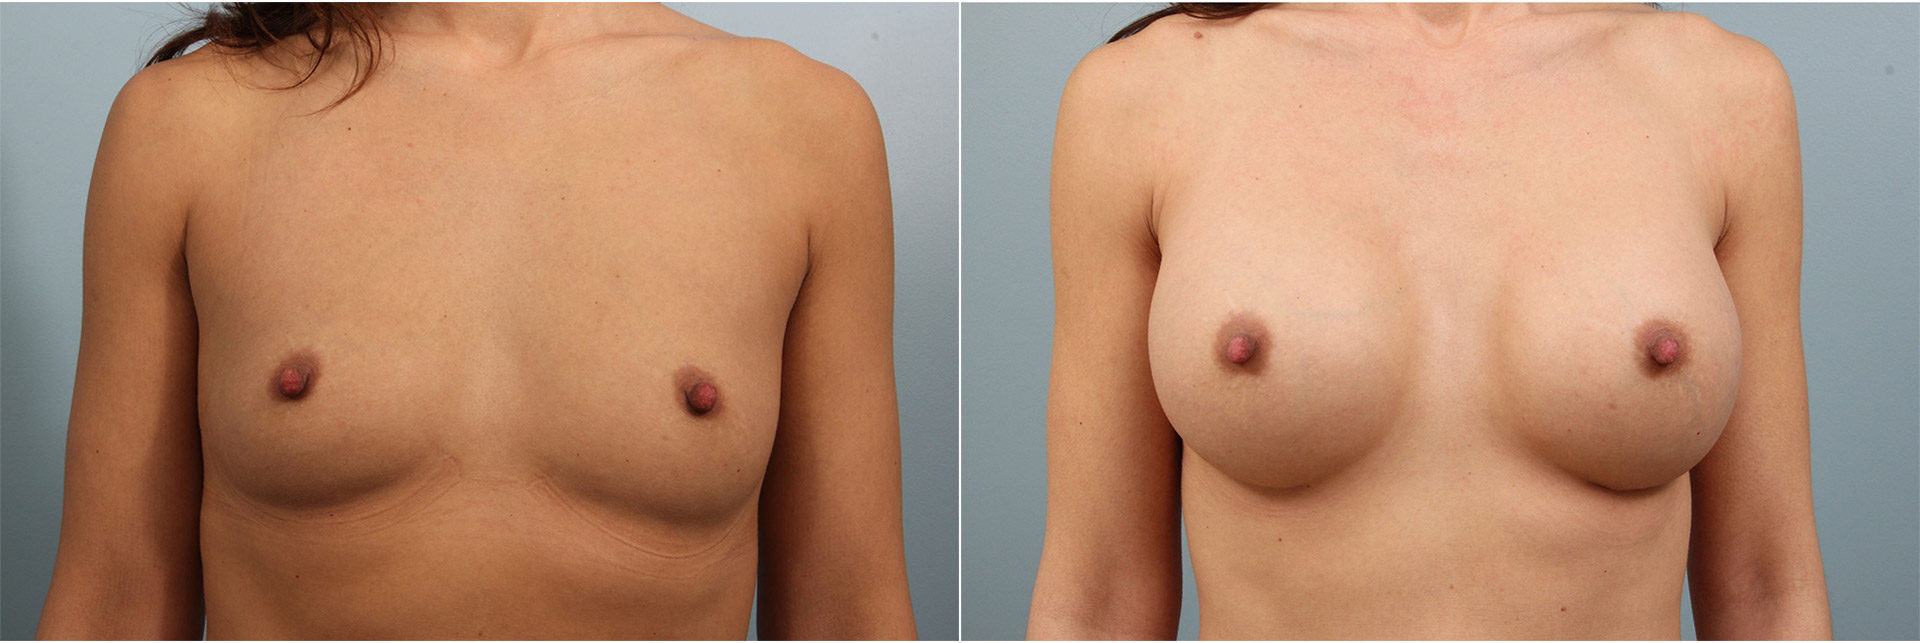 Closeup of a female before and after breast augmentation surgery, with round silicone implants and natural results